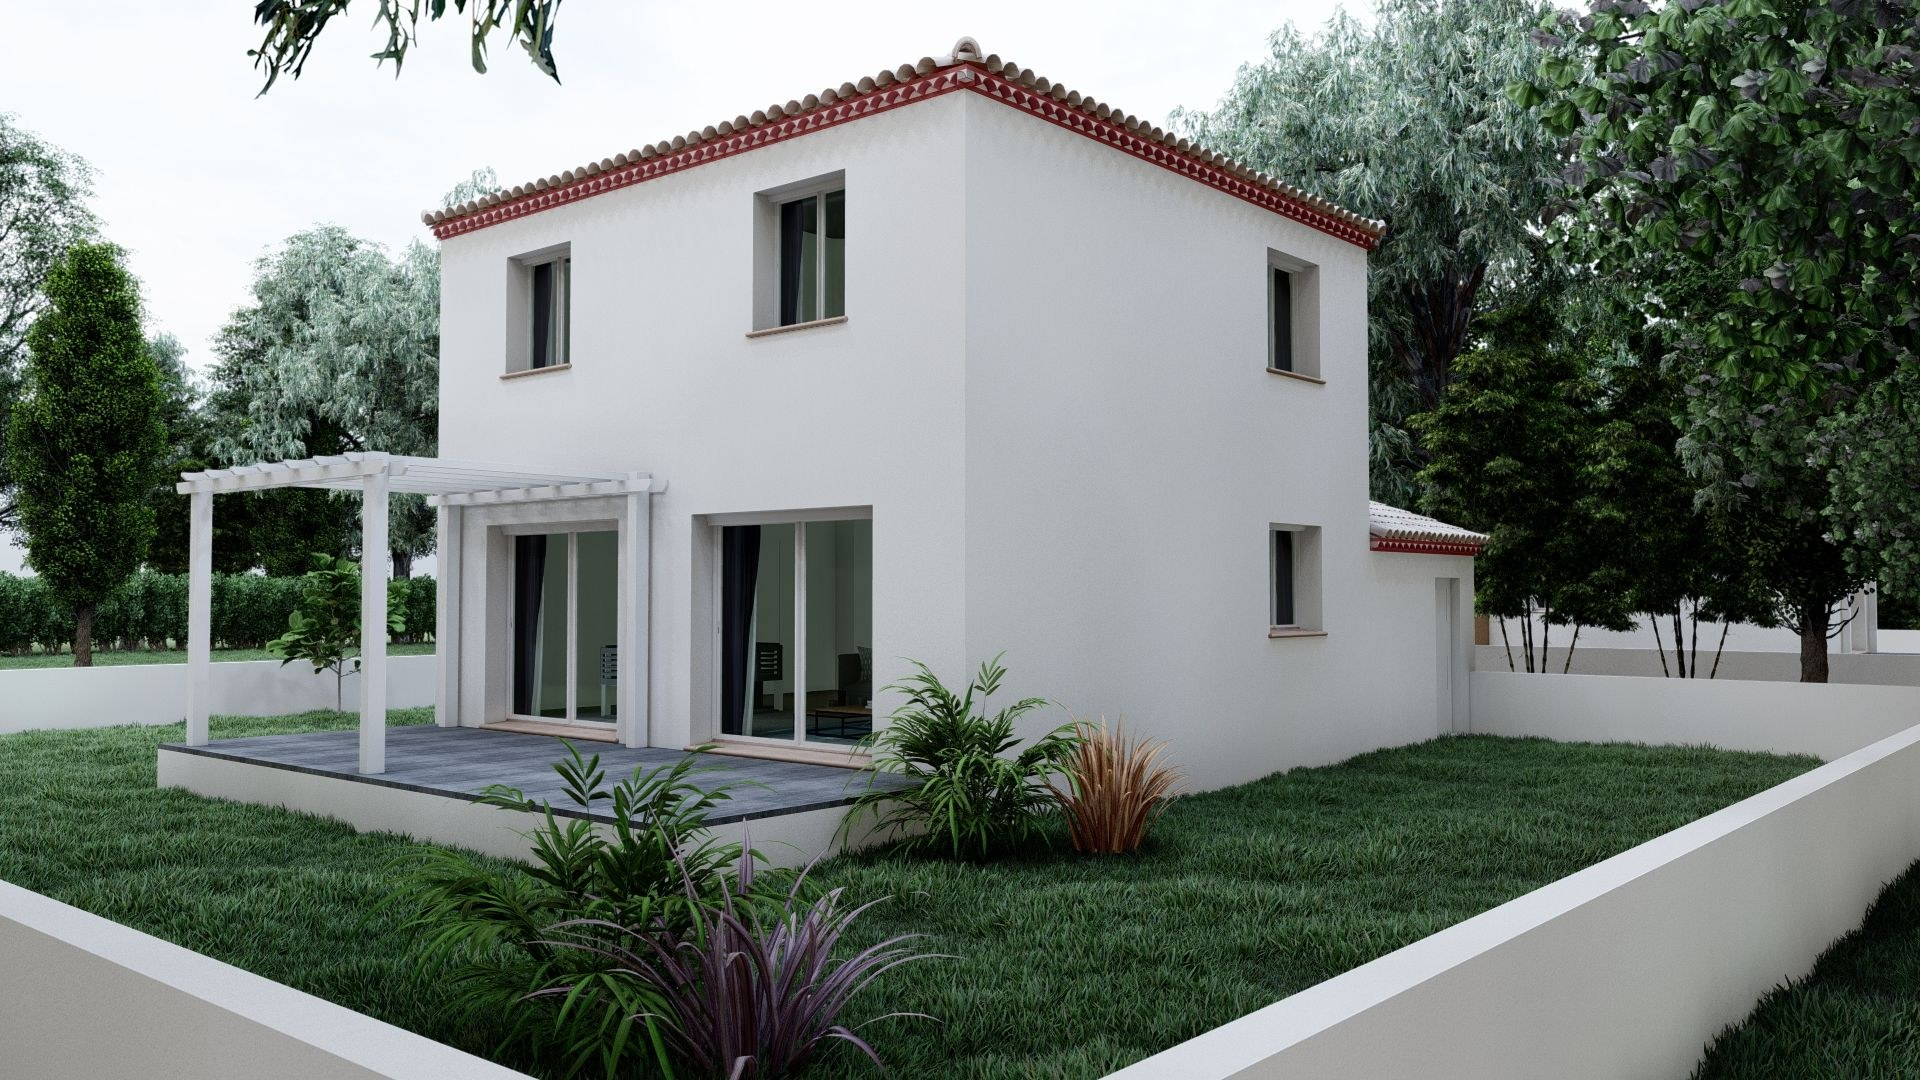 11- Bastide traditionnelle 90 m²